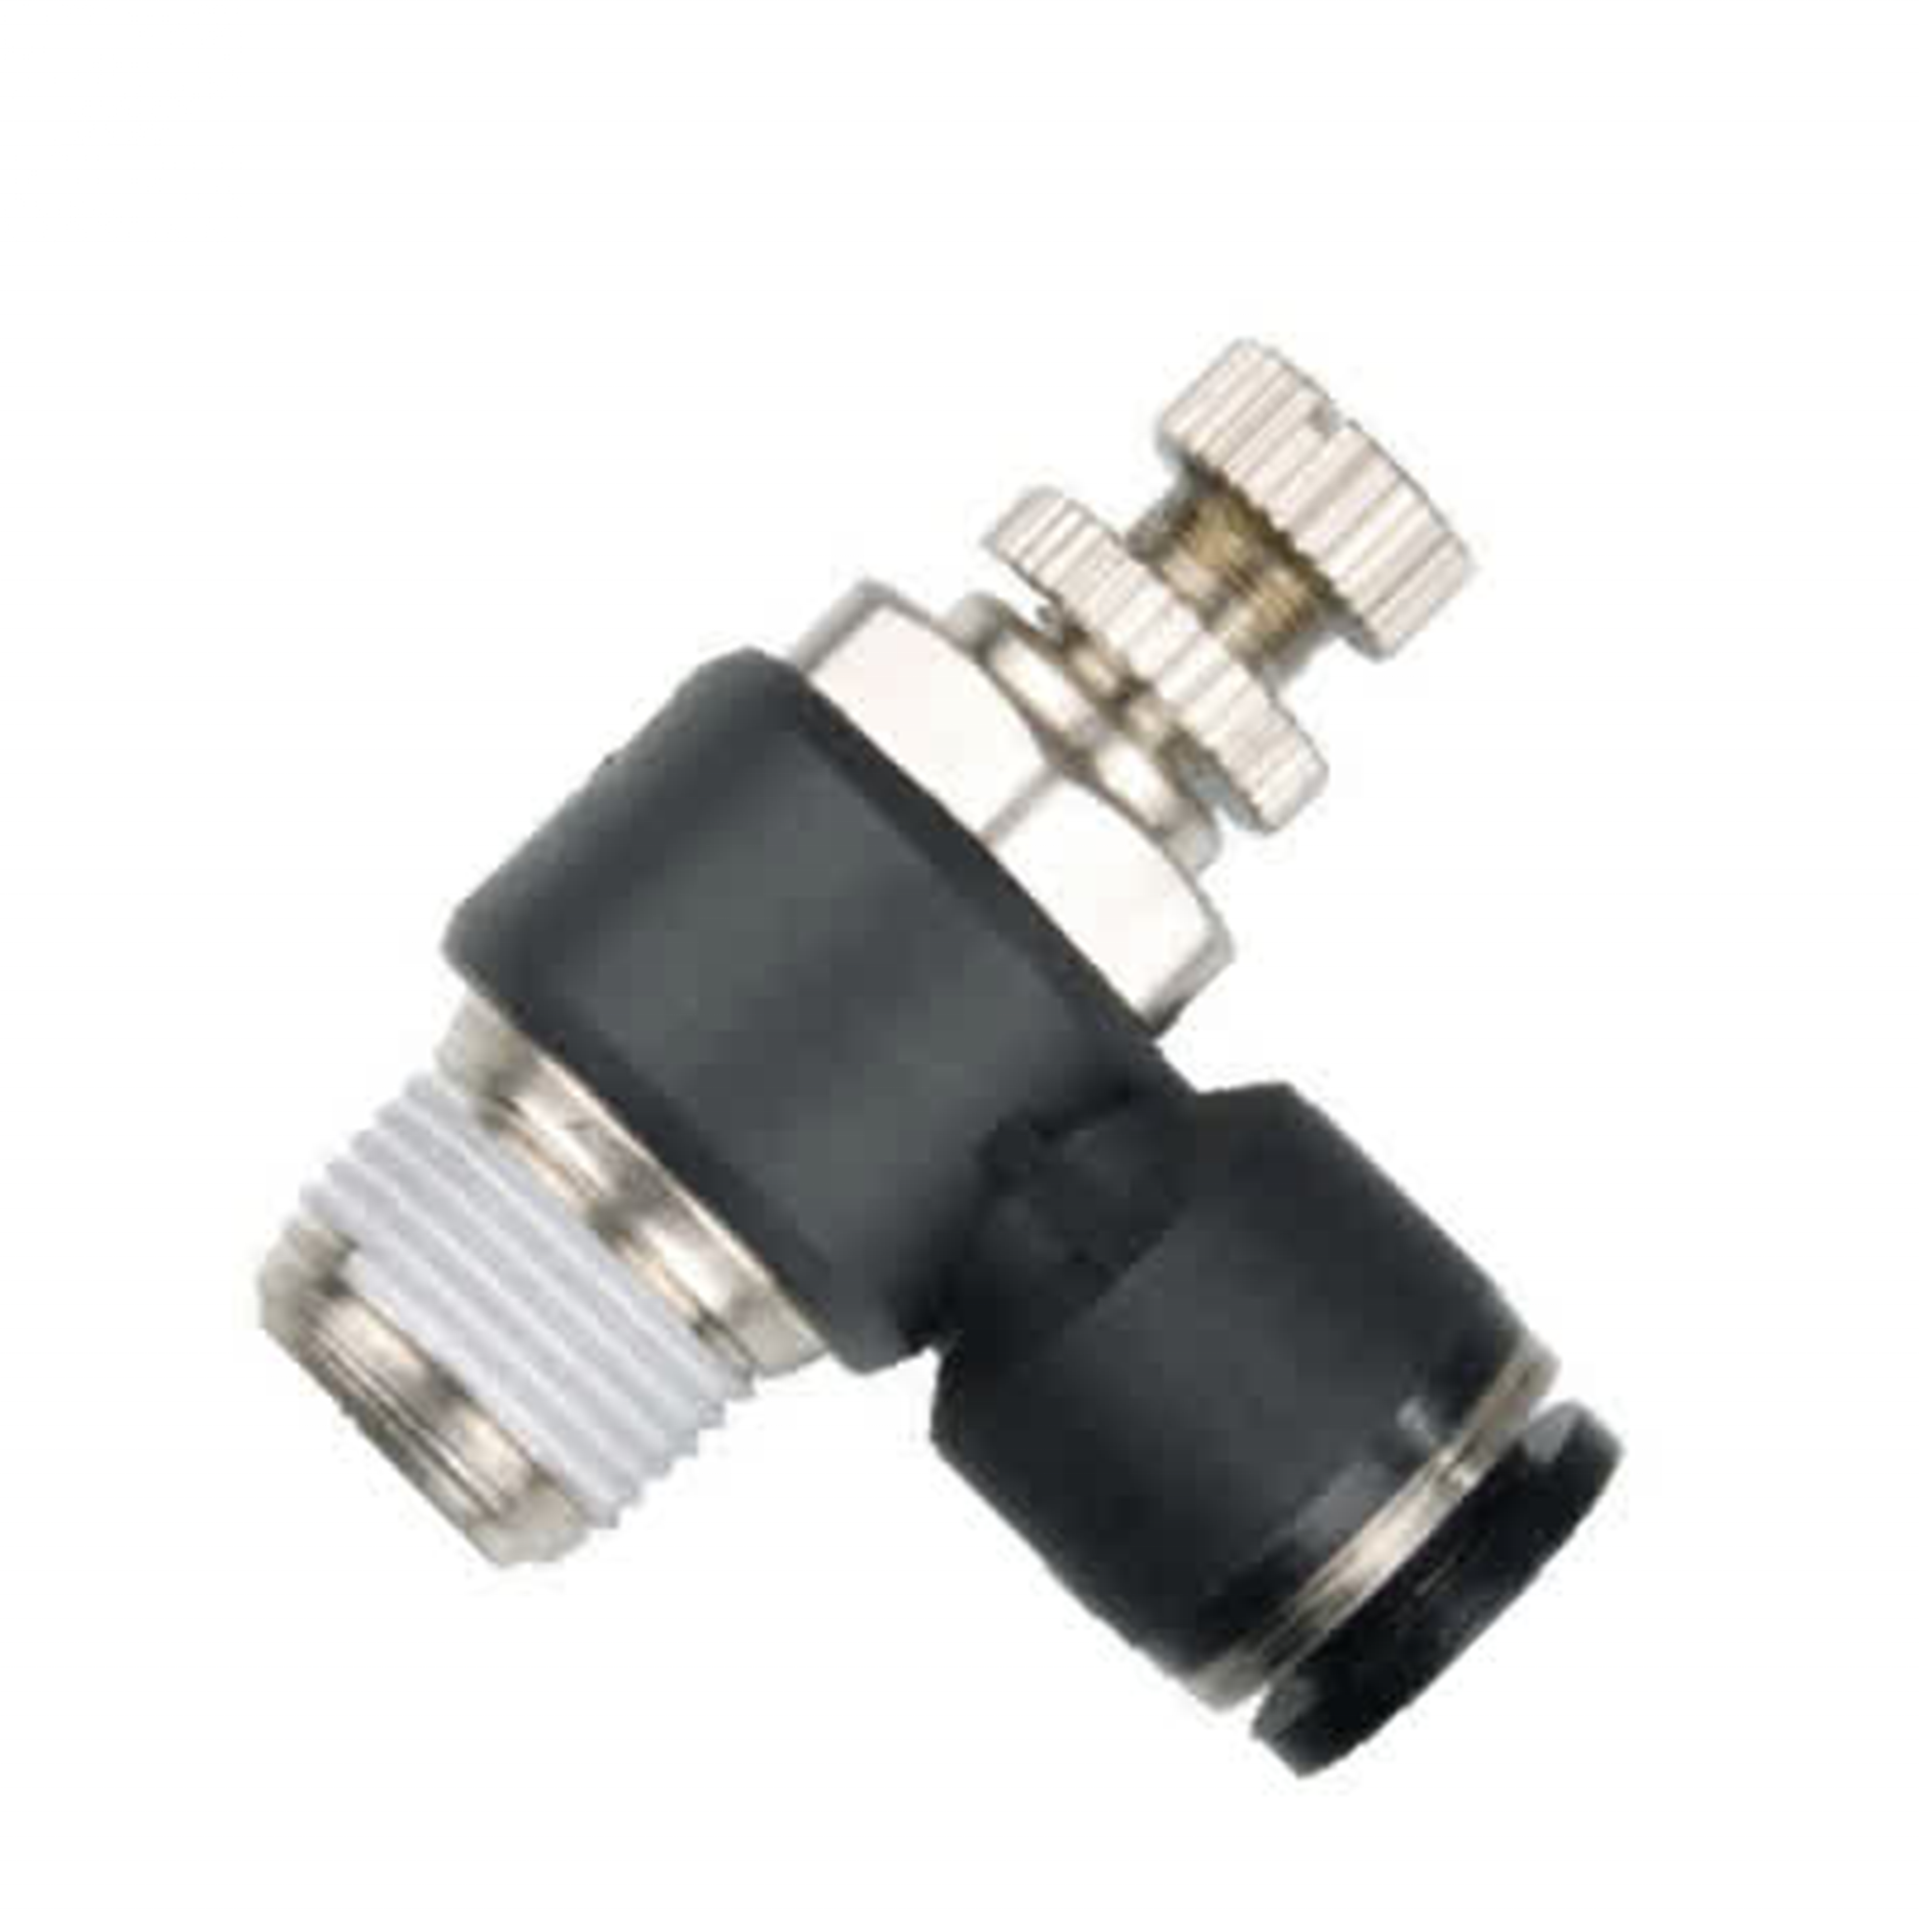 SC 1/4, 5/16, 3/8, 1/2 Air Flow Control Throttle Speed Adjust valve One Touch Push to Connect Pneumatic Fittings